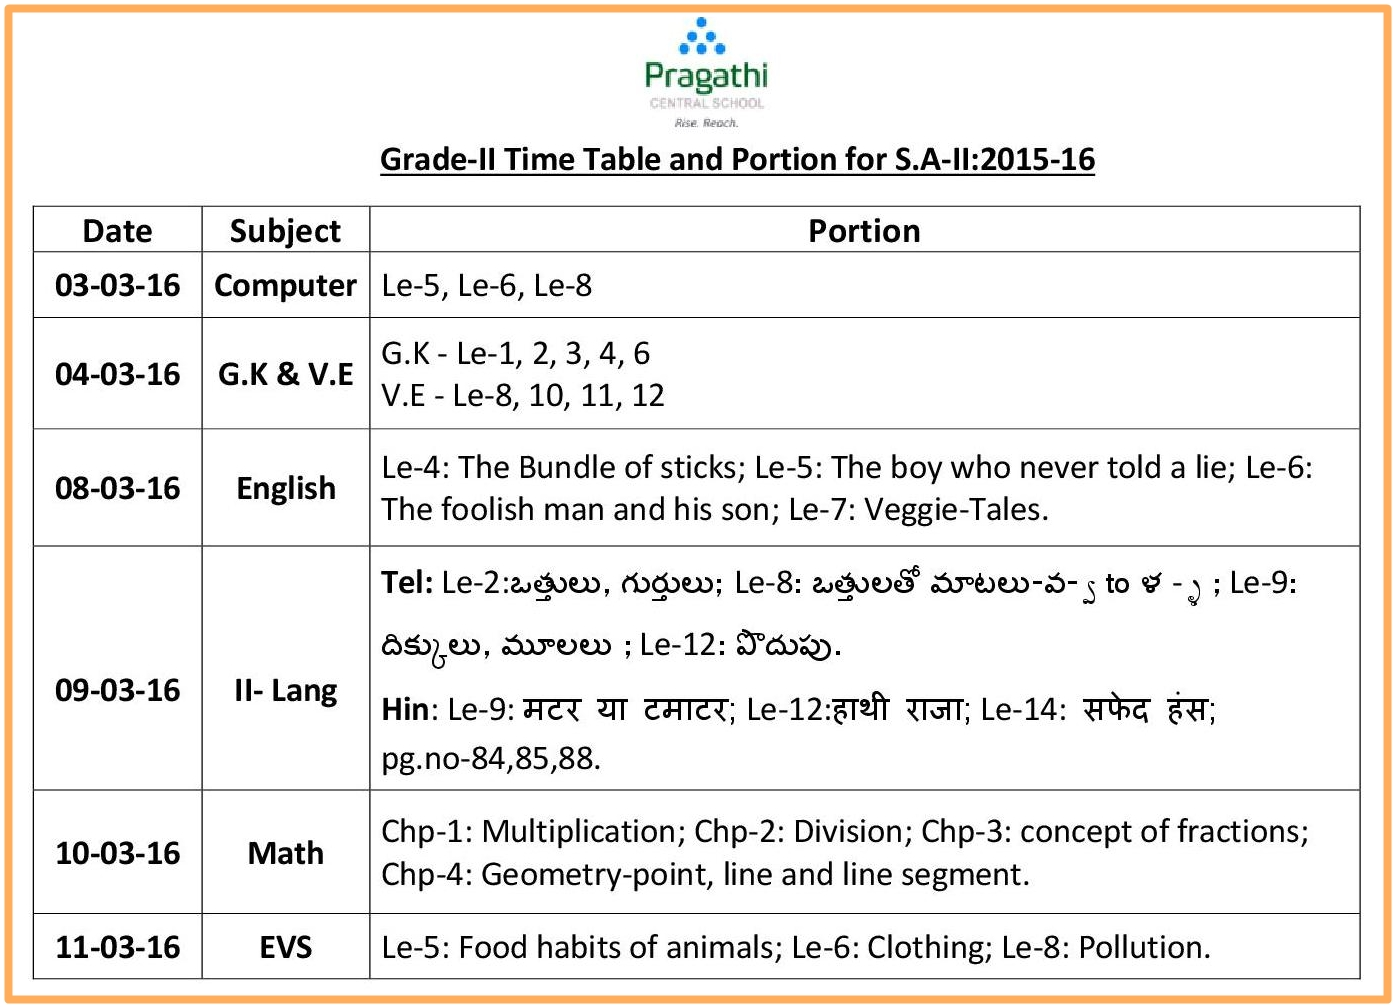 Pragathi central school grade 2 time table and for Html table class